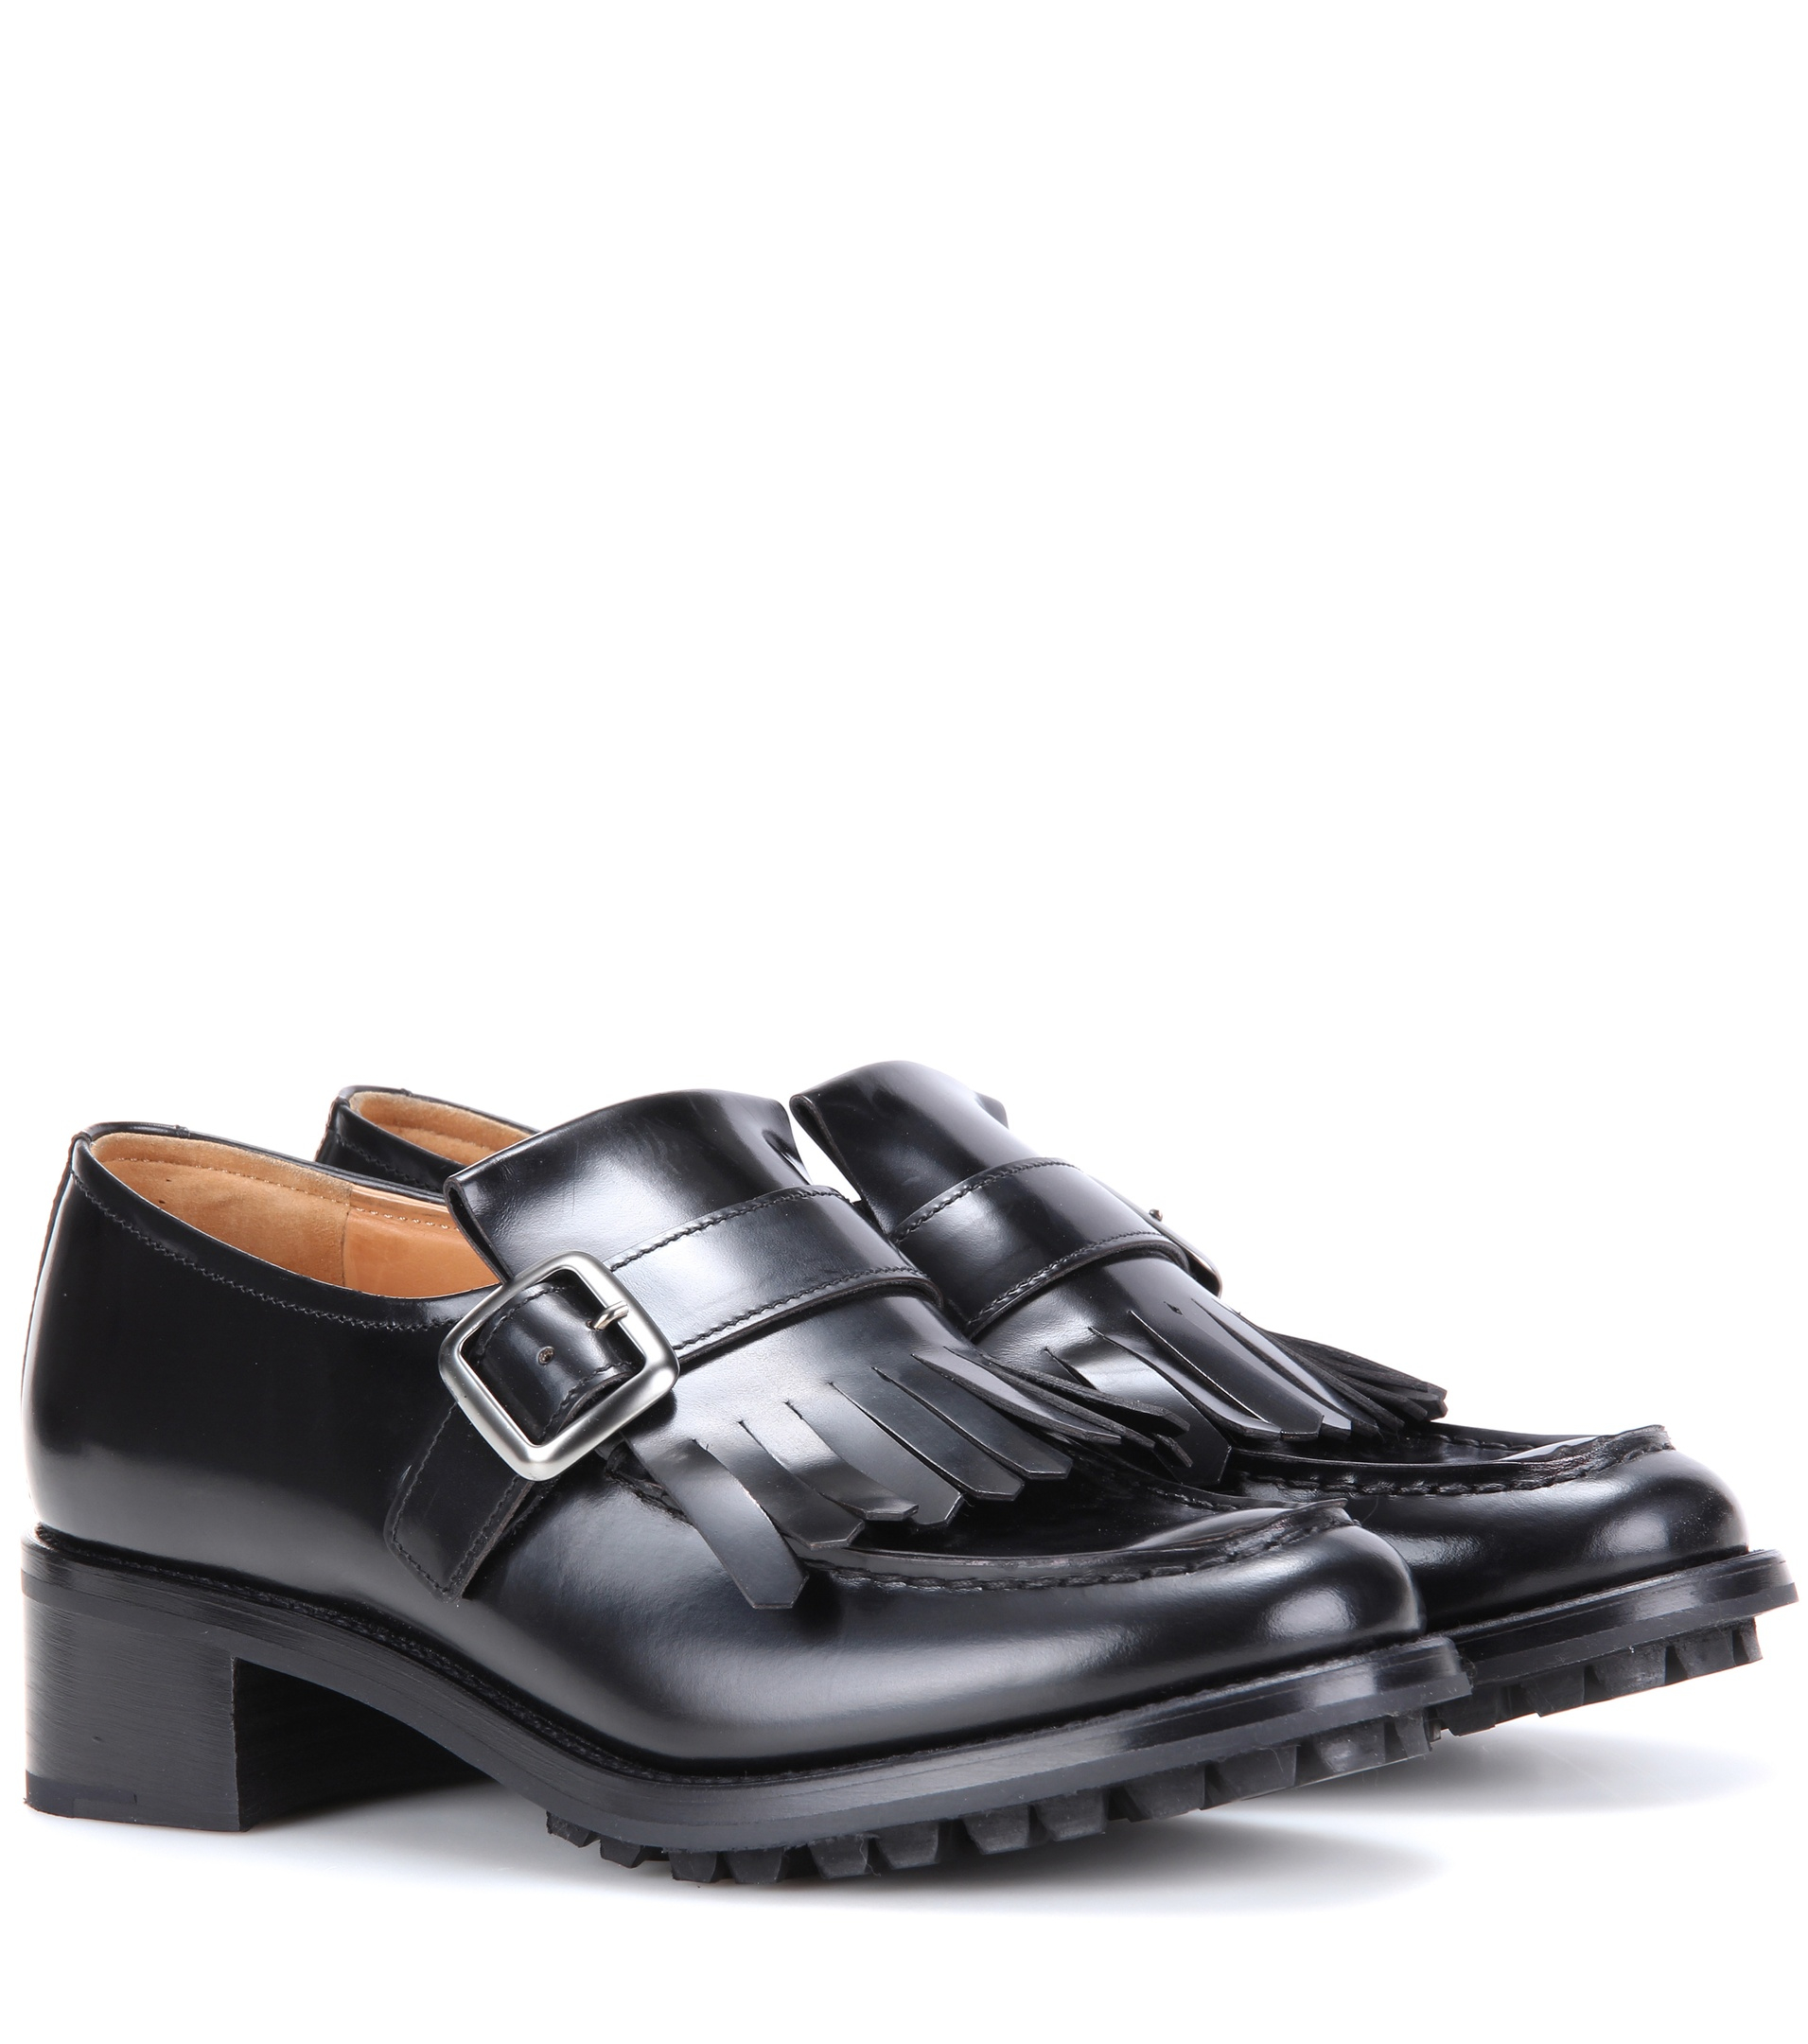 Men's Washington Leather Loafer Dress Shoe Styles: Boots, Sandals, Athletic Shoes, Dress Shoes, Heels, Slippers, Kids Shoes.